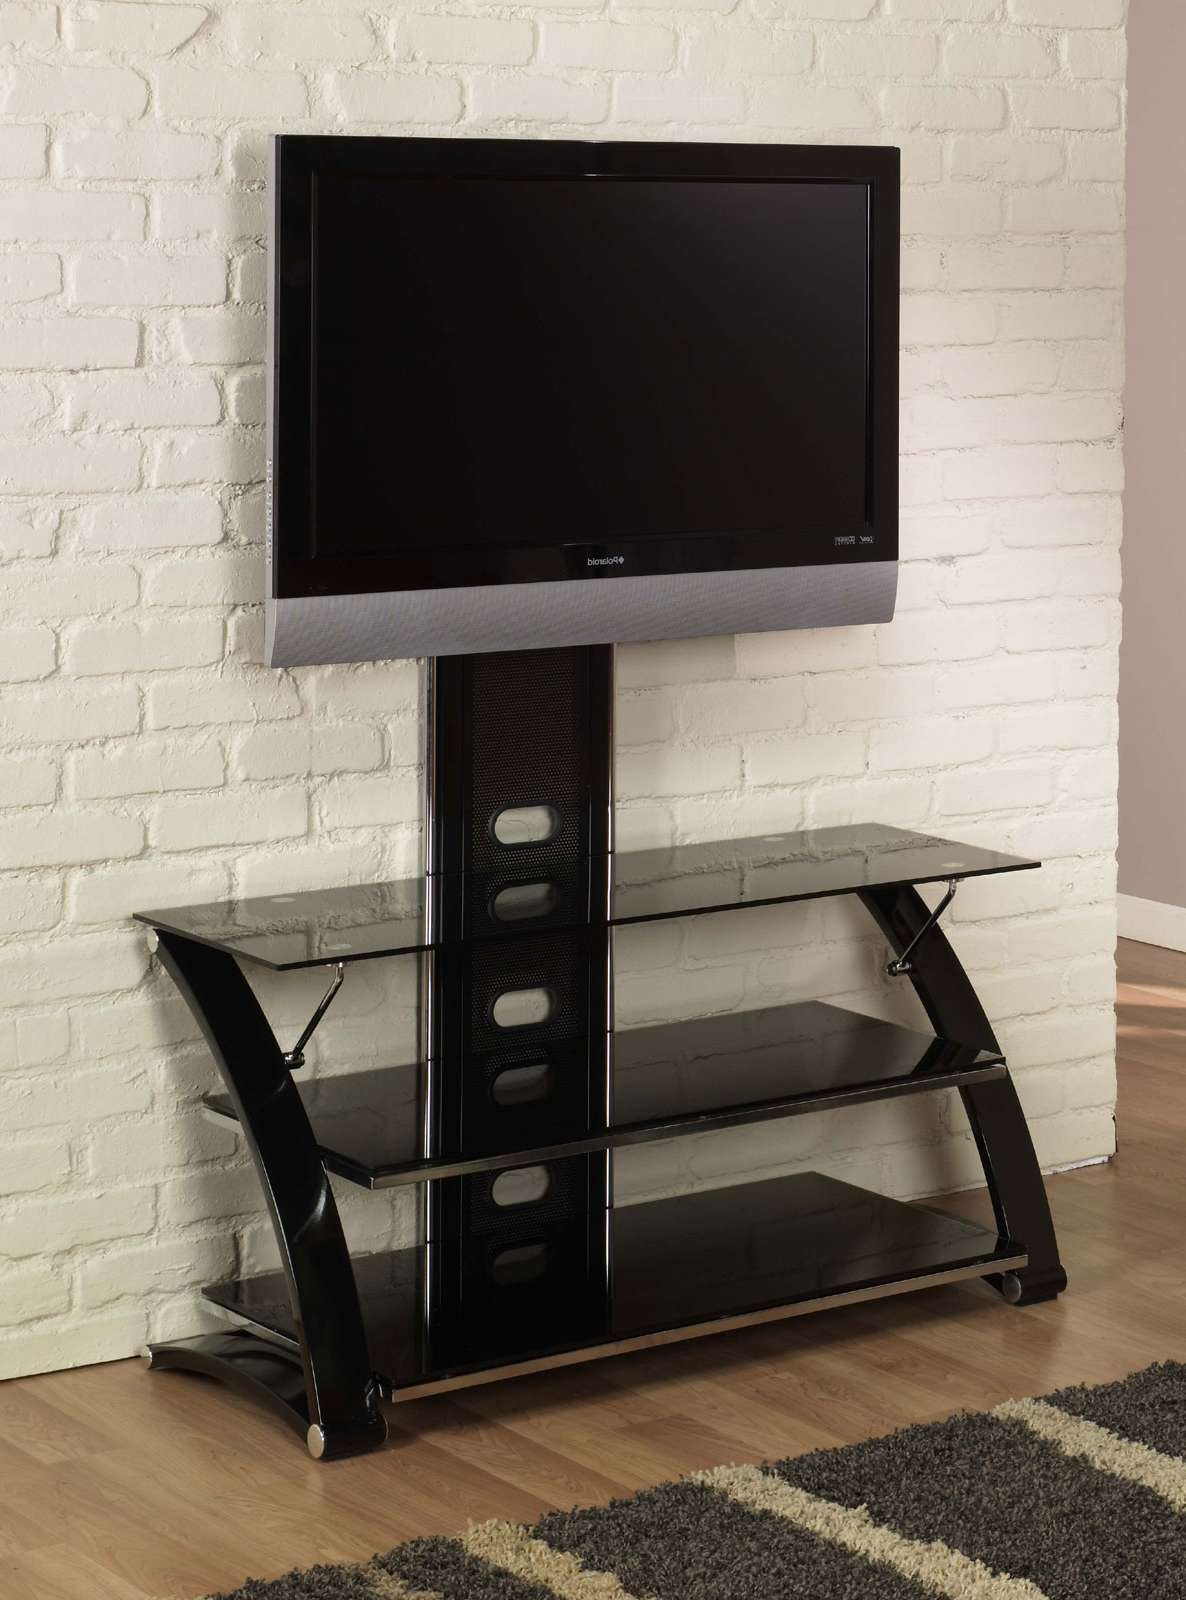 Three Tiers Glass Flat Screen Tv Stand With Mount And Cool Frame Regarding Wood And Glass Tv Stands For Flat Screens (View 3 of 20)